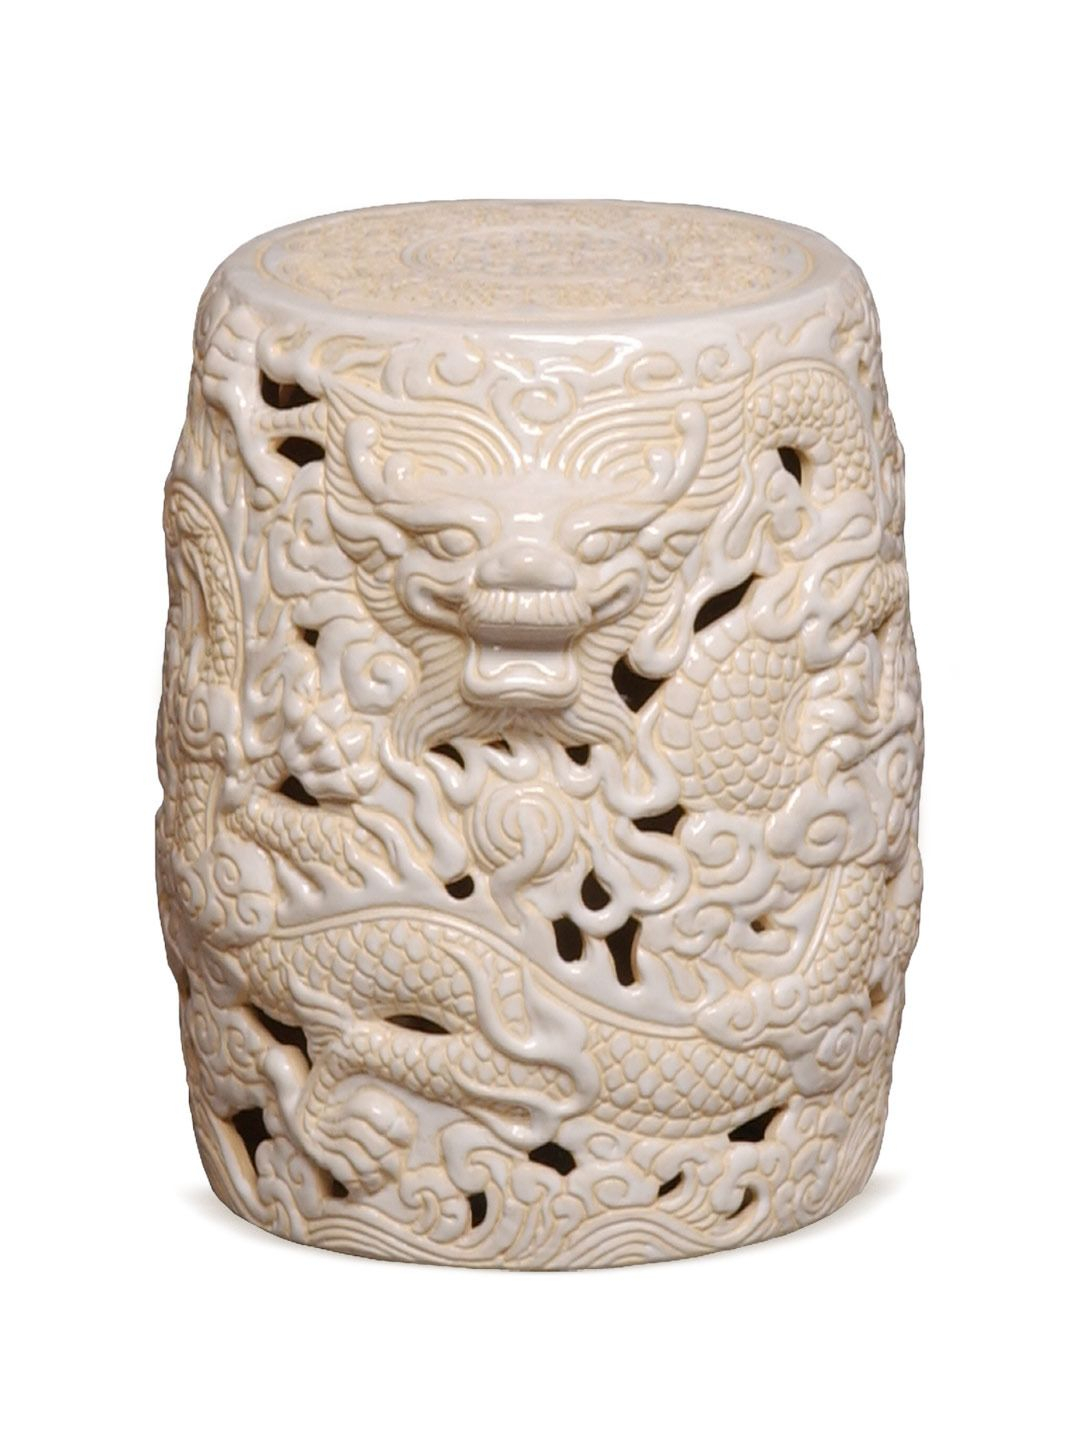 Dragon Stool | Garden Stool, Dragon Garden, Stool Pertaining To Dragon Garden Stools (View 7 of 26)